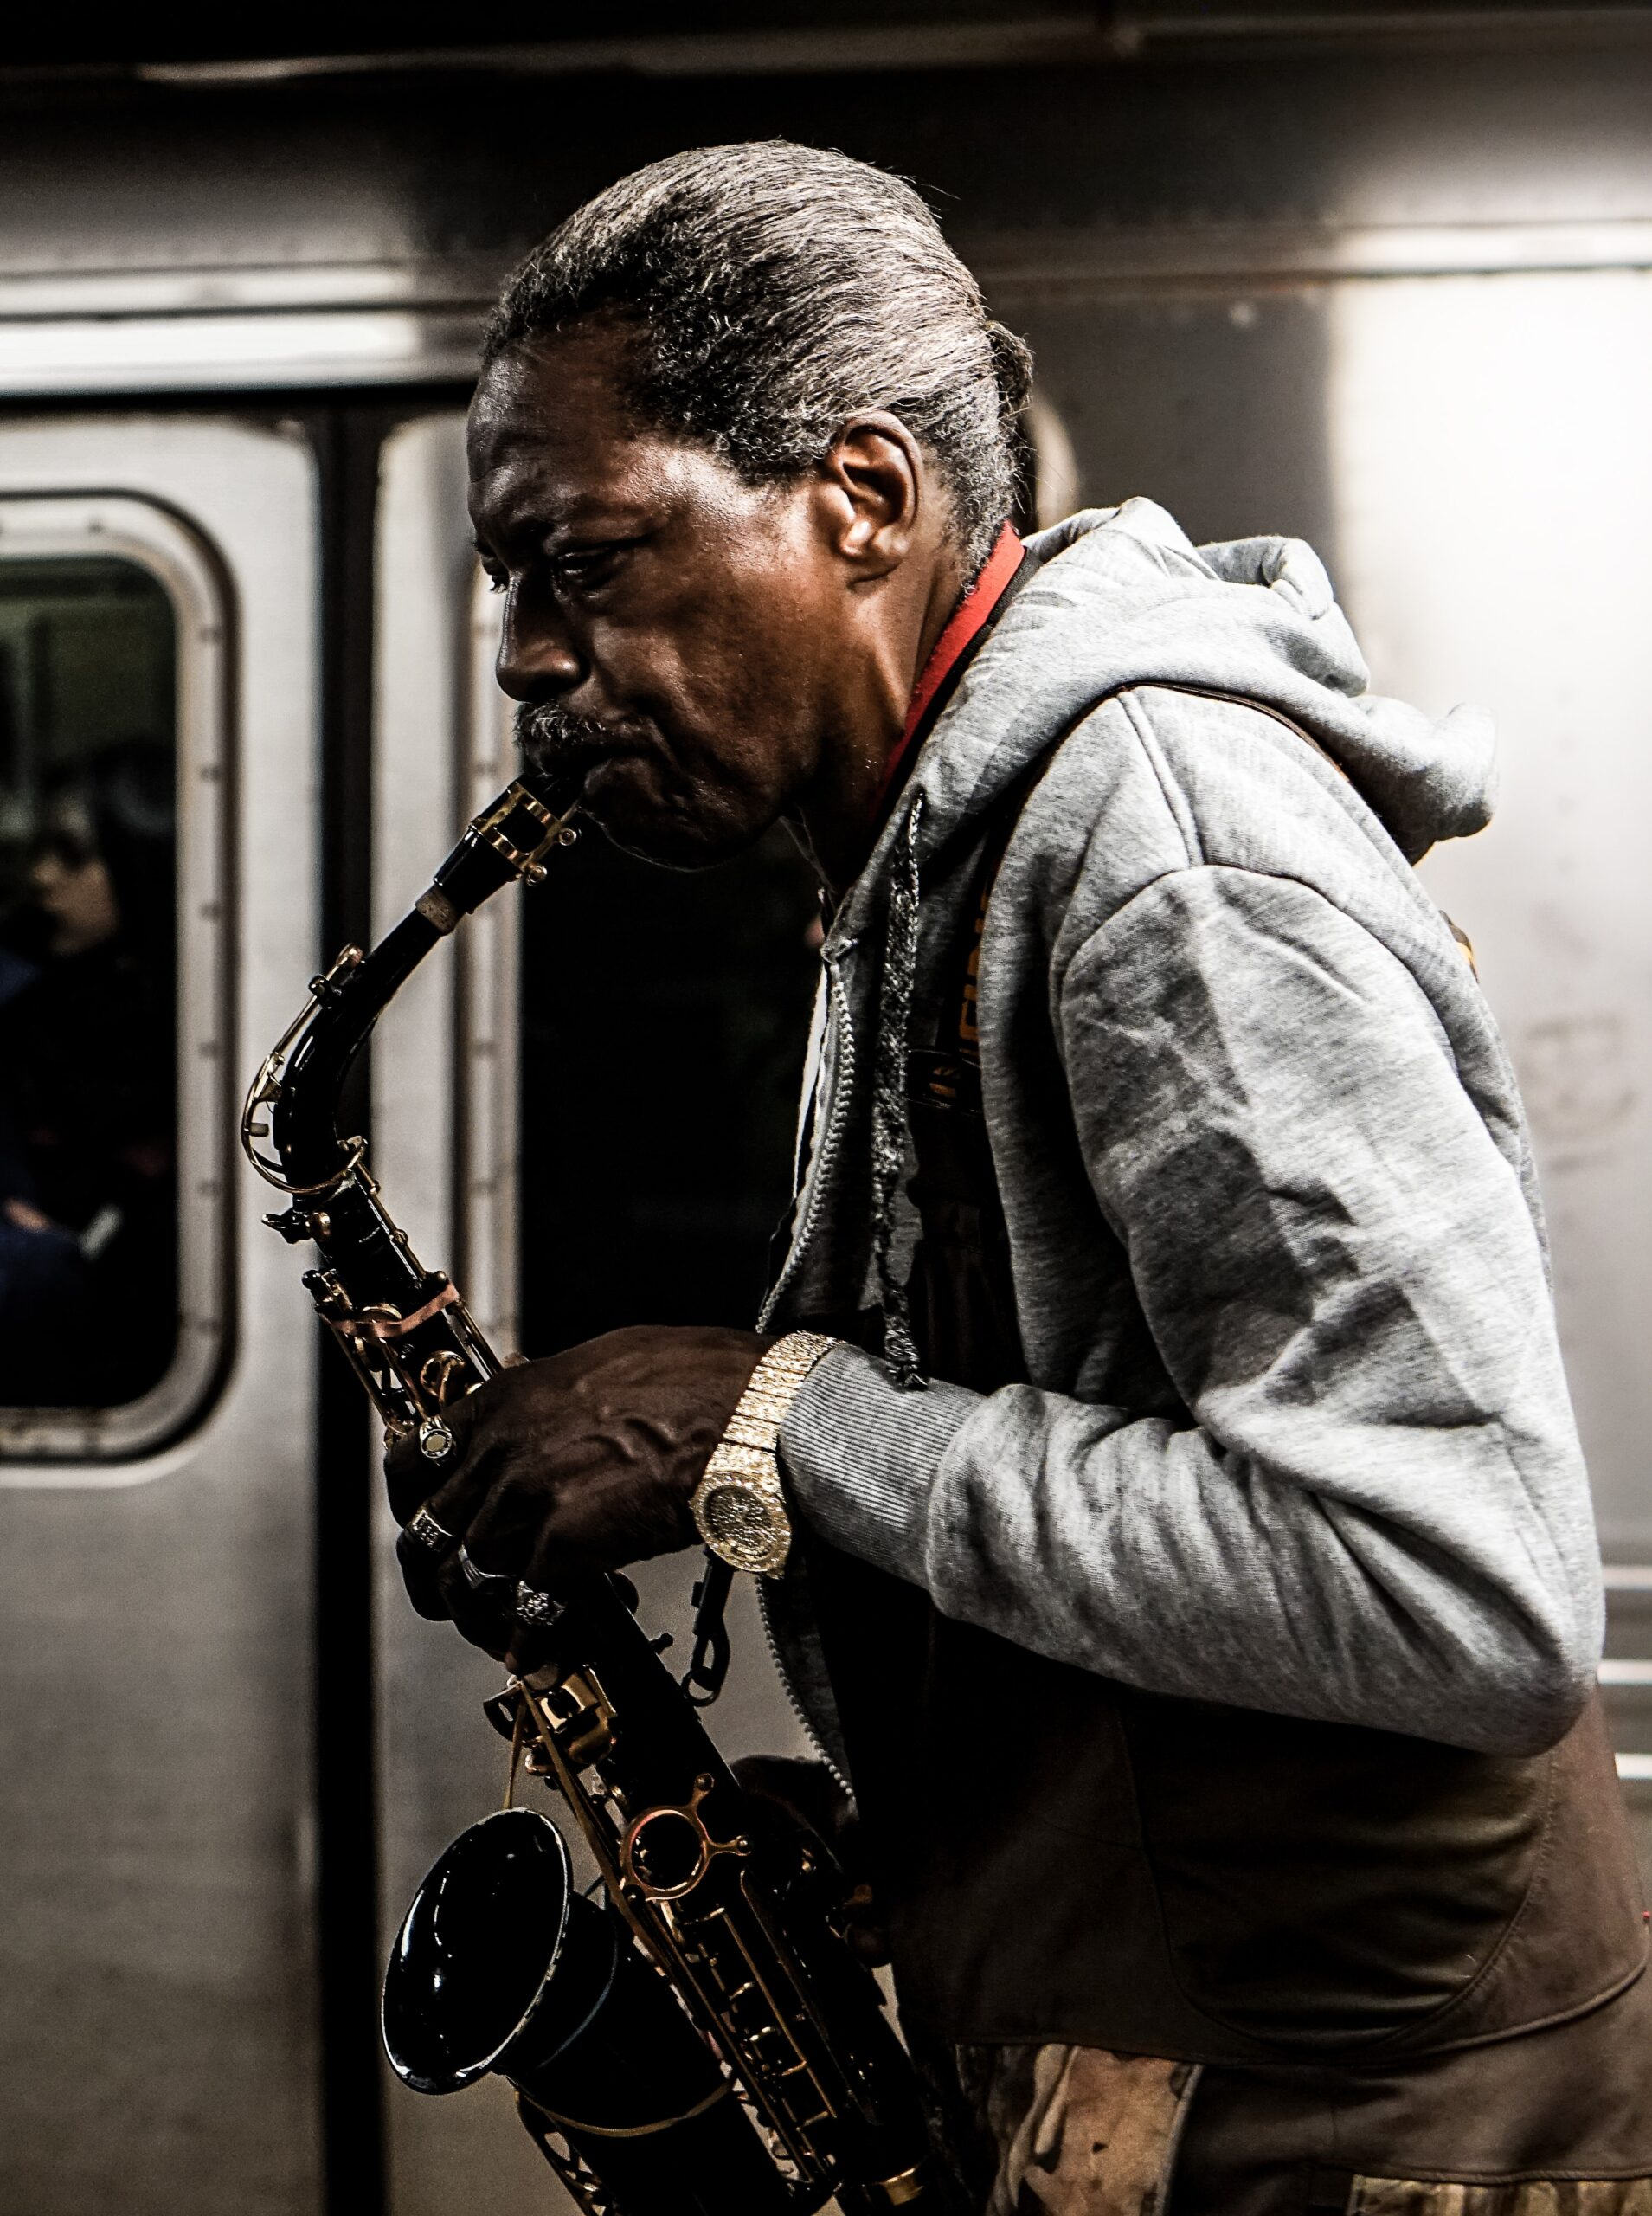 sash-margrie-hunt-Man with black Tenor Sax playing in NYC subway-unsplash